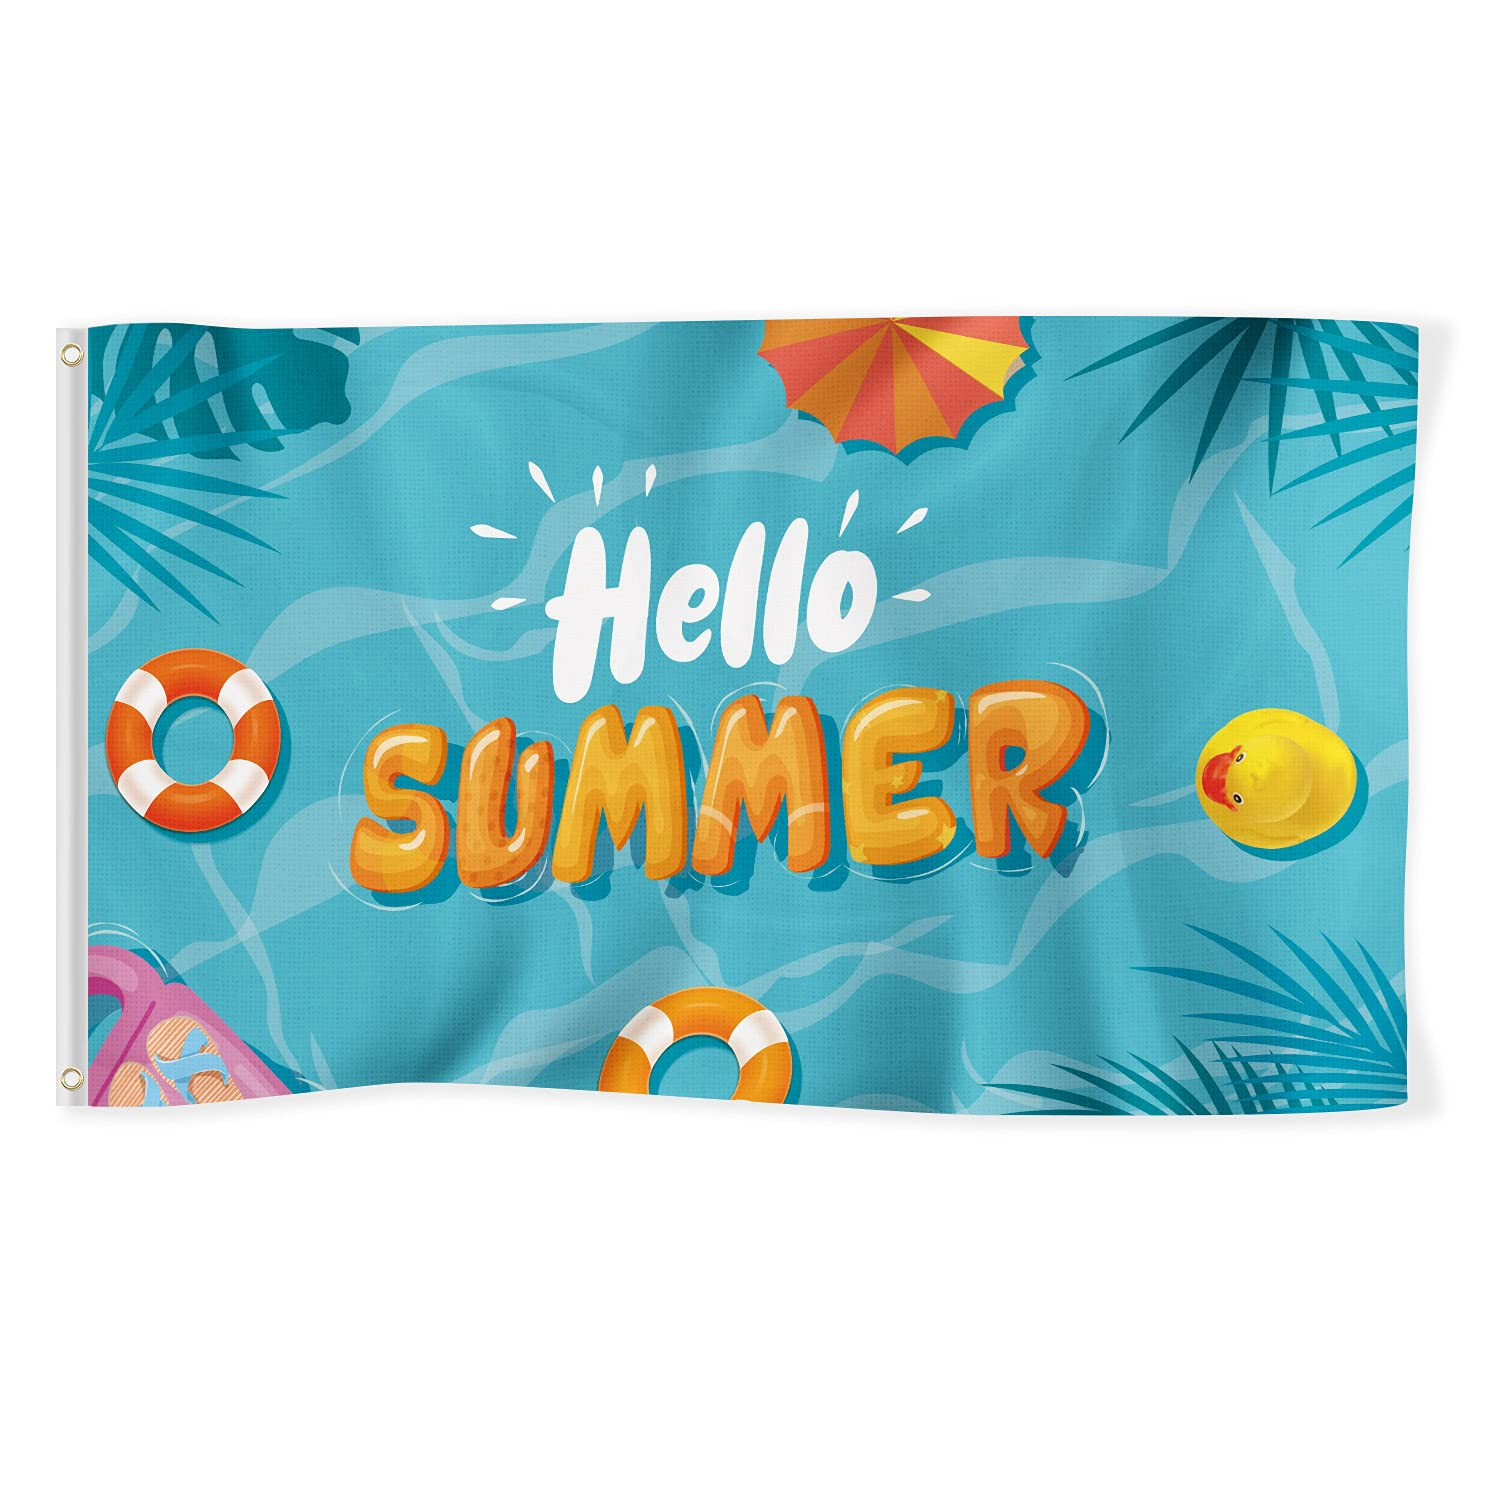 Hello Summer Flag 3x5 Ft Banner Decorations Swimming Pool Duck Swim Ring Yard Sign Party Supplies Holiday Decoration Cool Funny Flags Welcome Double Stitched with Brass Grommets House Outdoor Garden Dorm Room Farmhouse Wall Door Travel Man Cave Indoor (Blue)